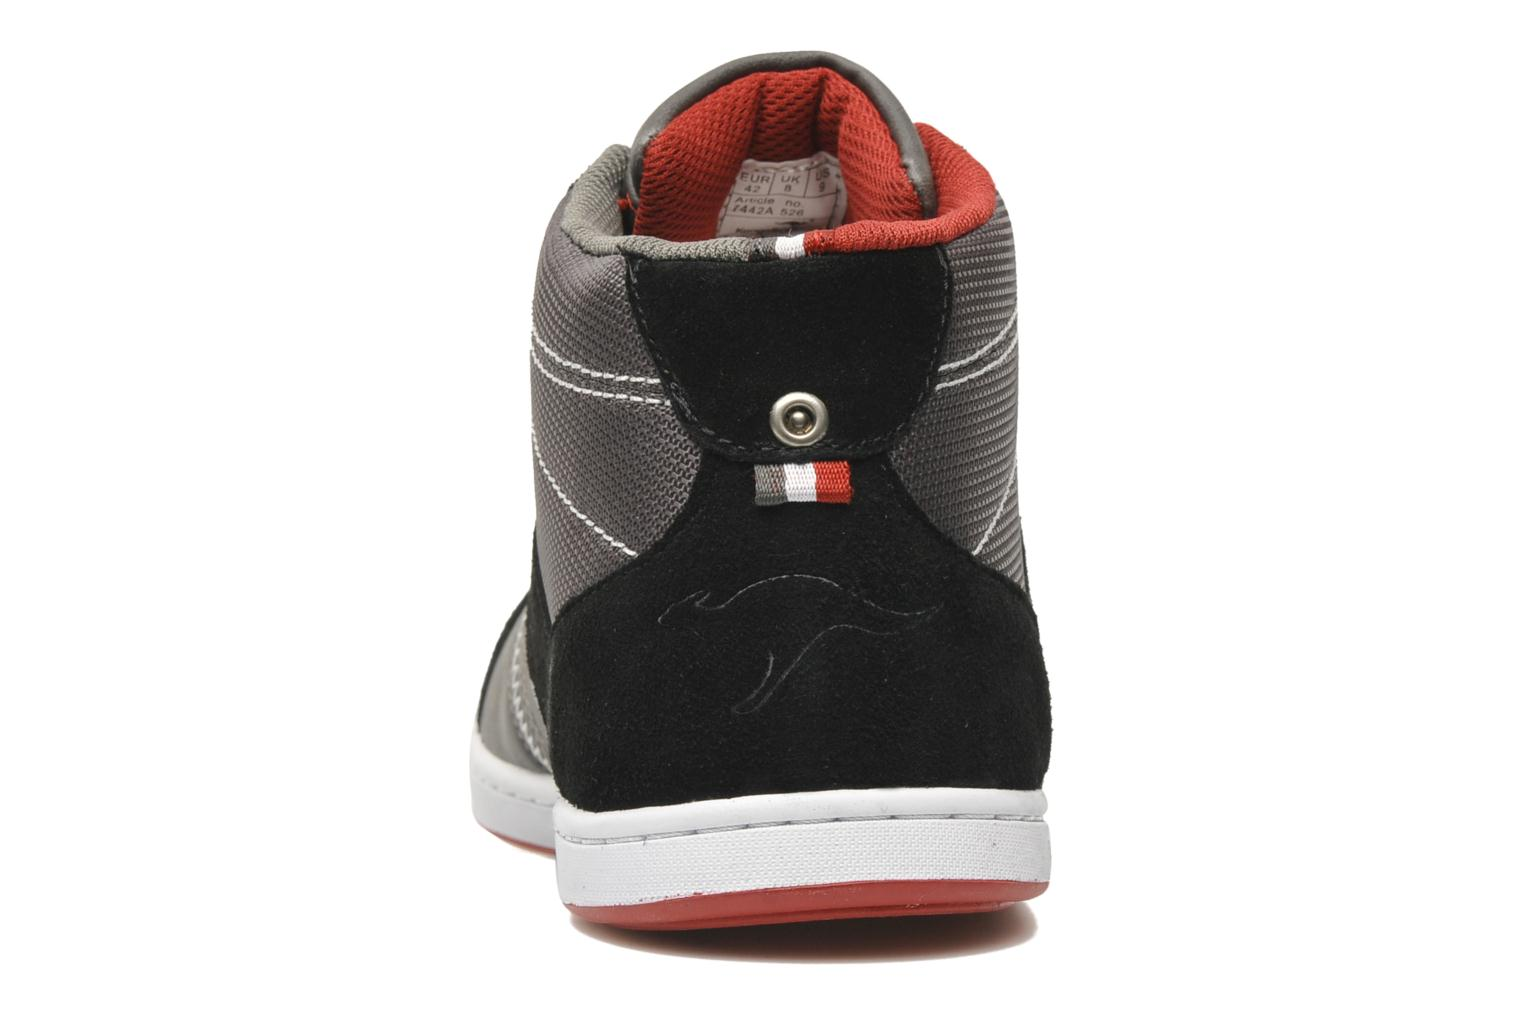 Jurek black/dark grey/kangaroos red